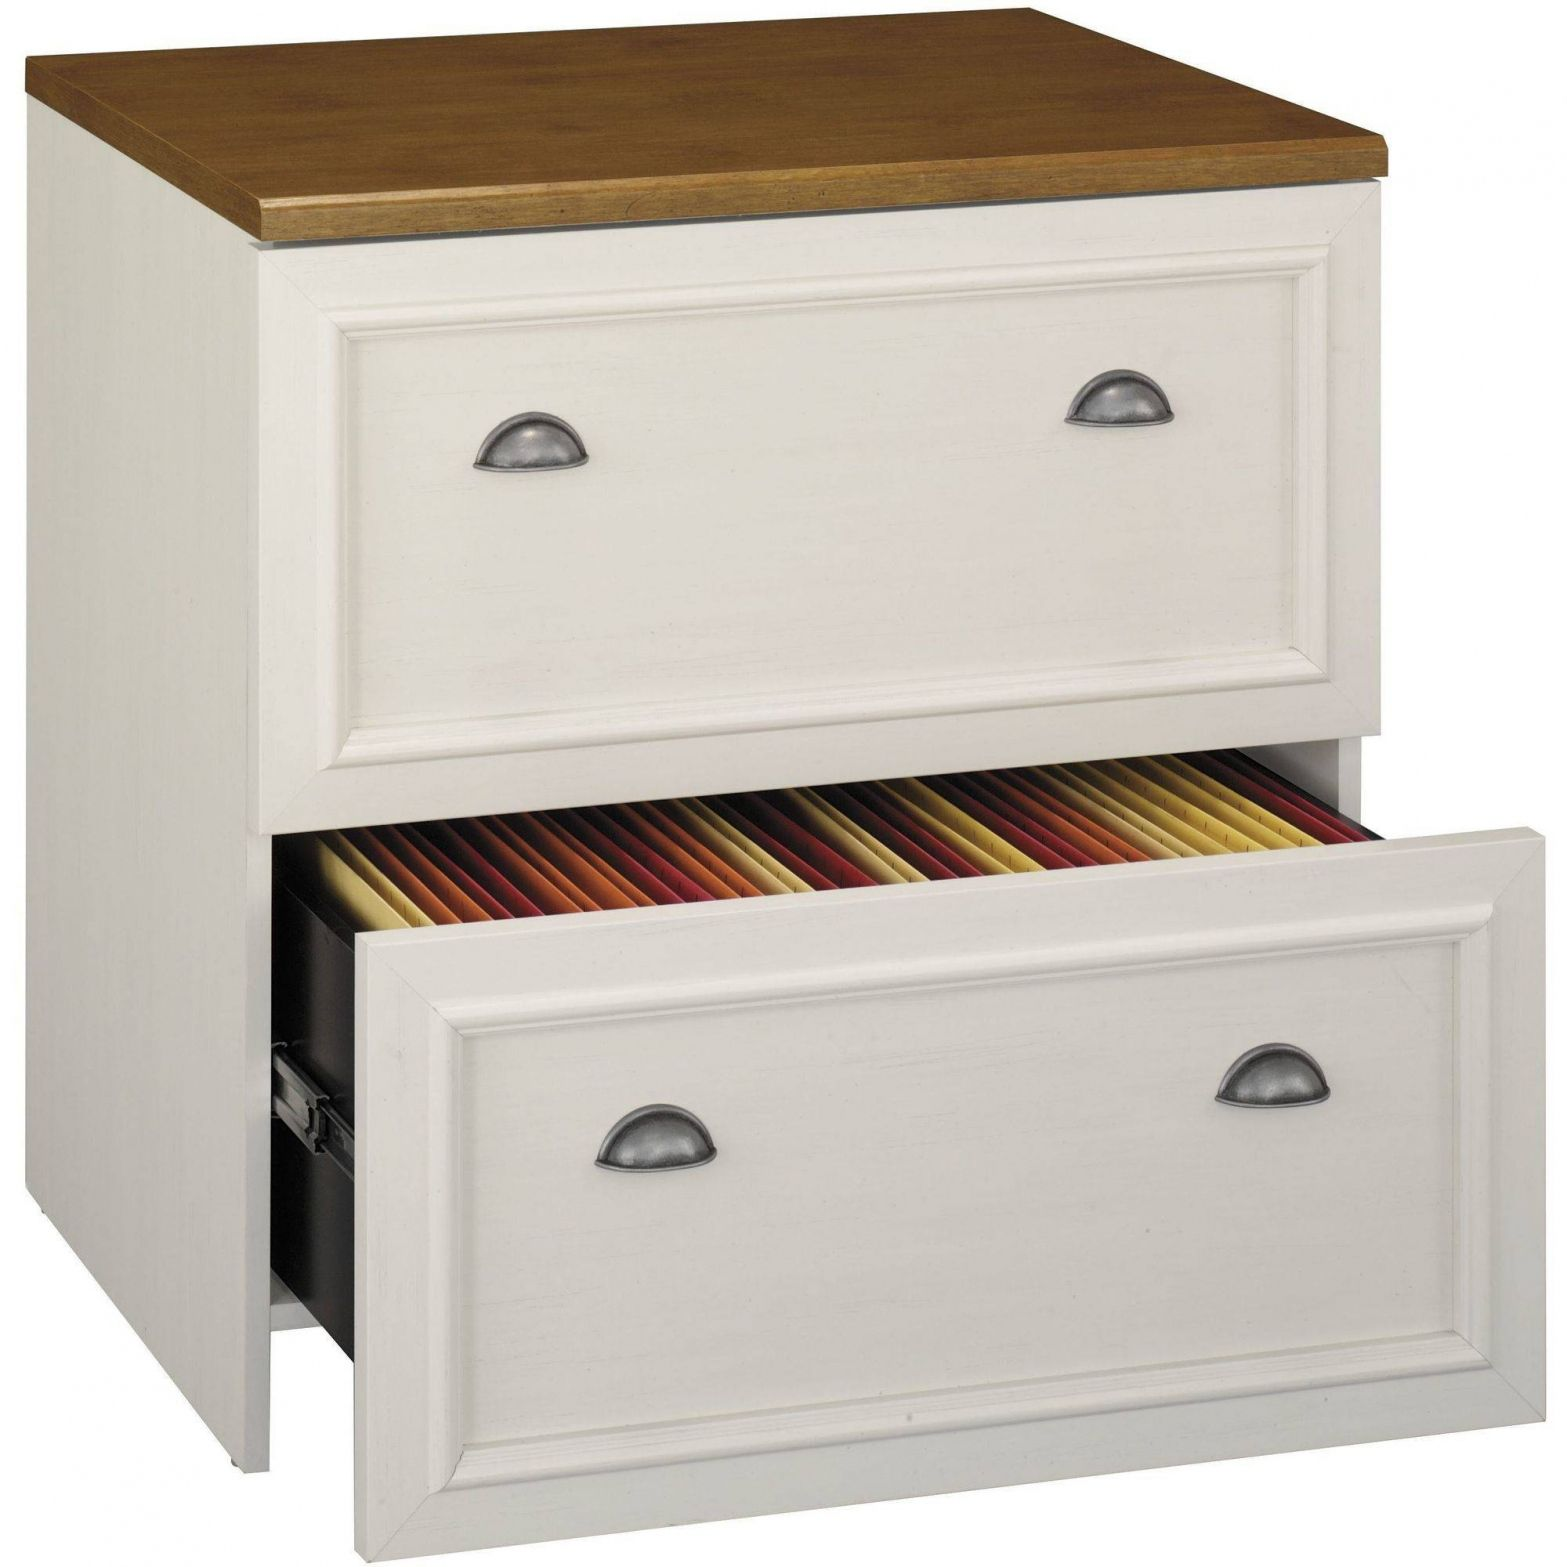 2018 Lateral Office File Cabinets Country Home Furniture Check More At Http